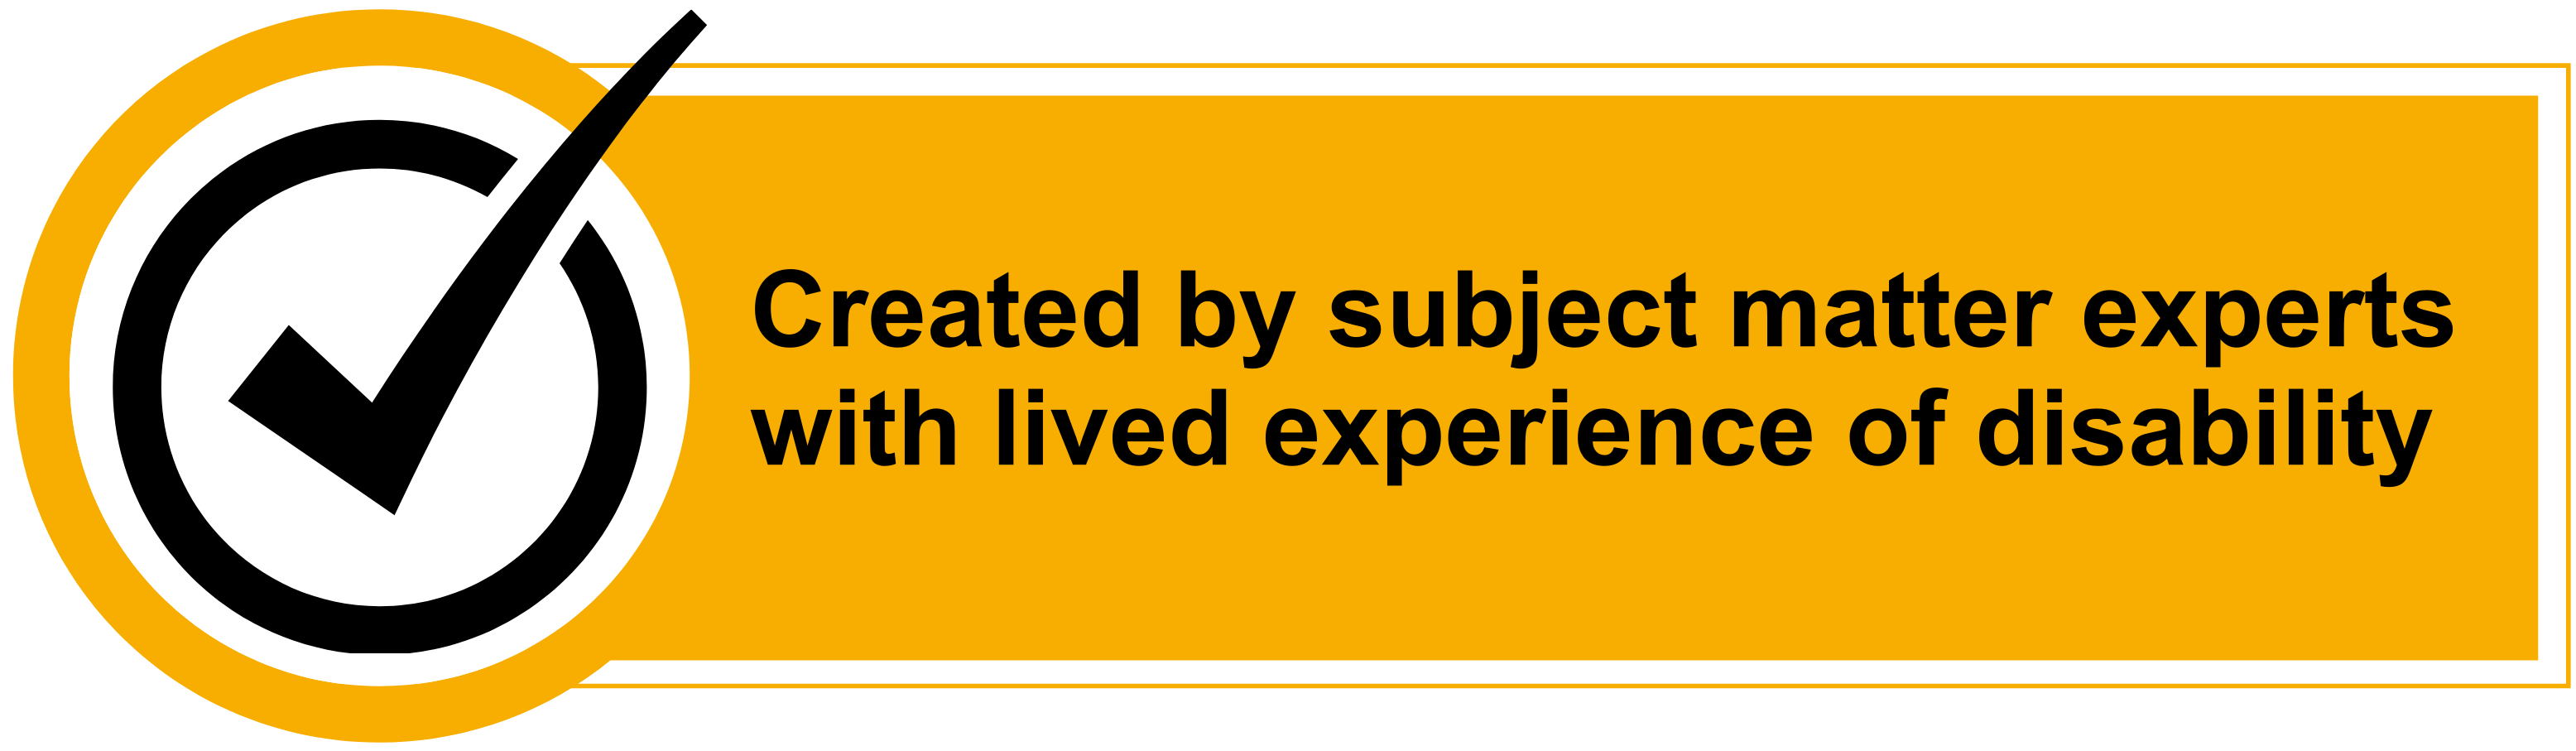 Created by subject matter experts with lived experience of disability